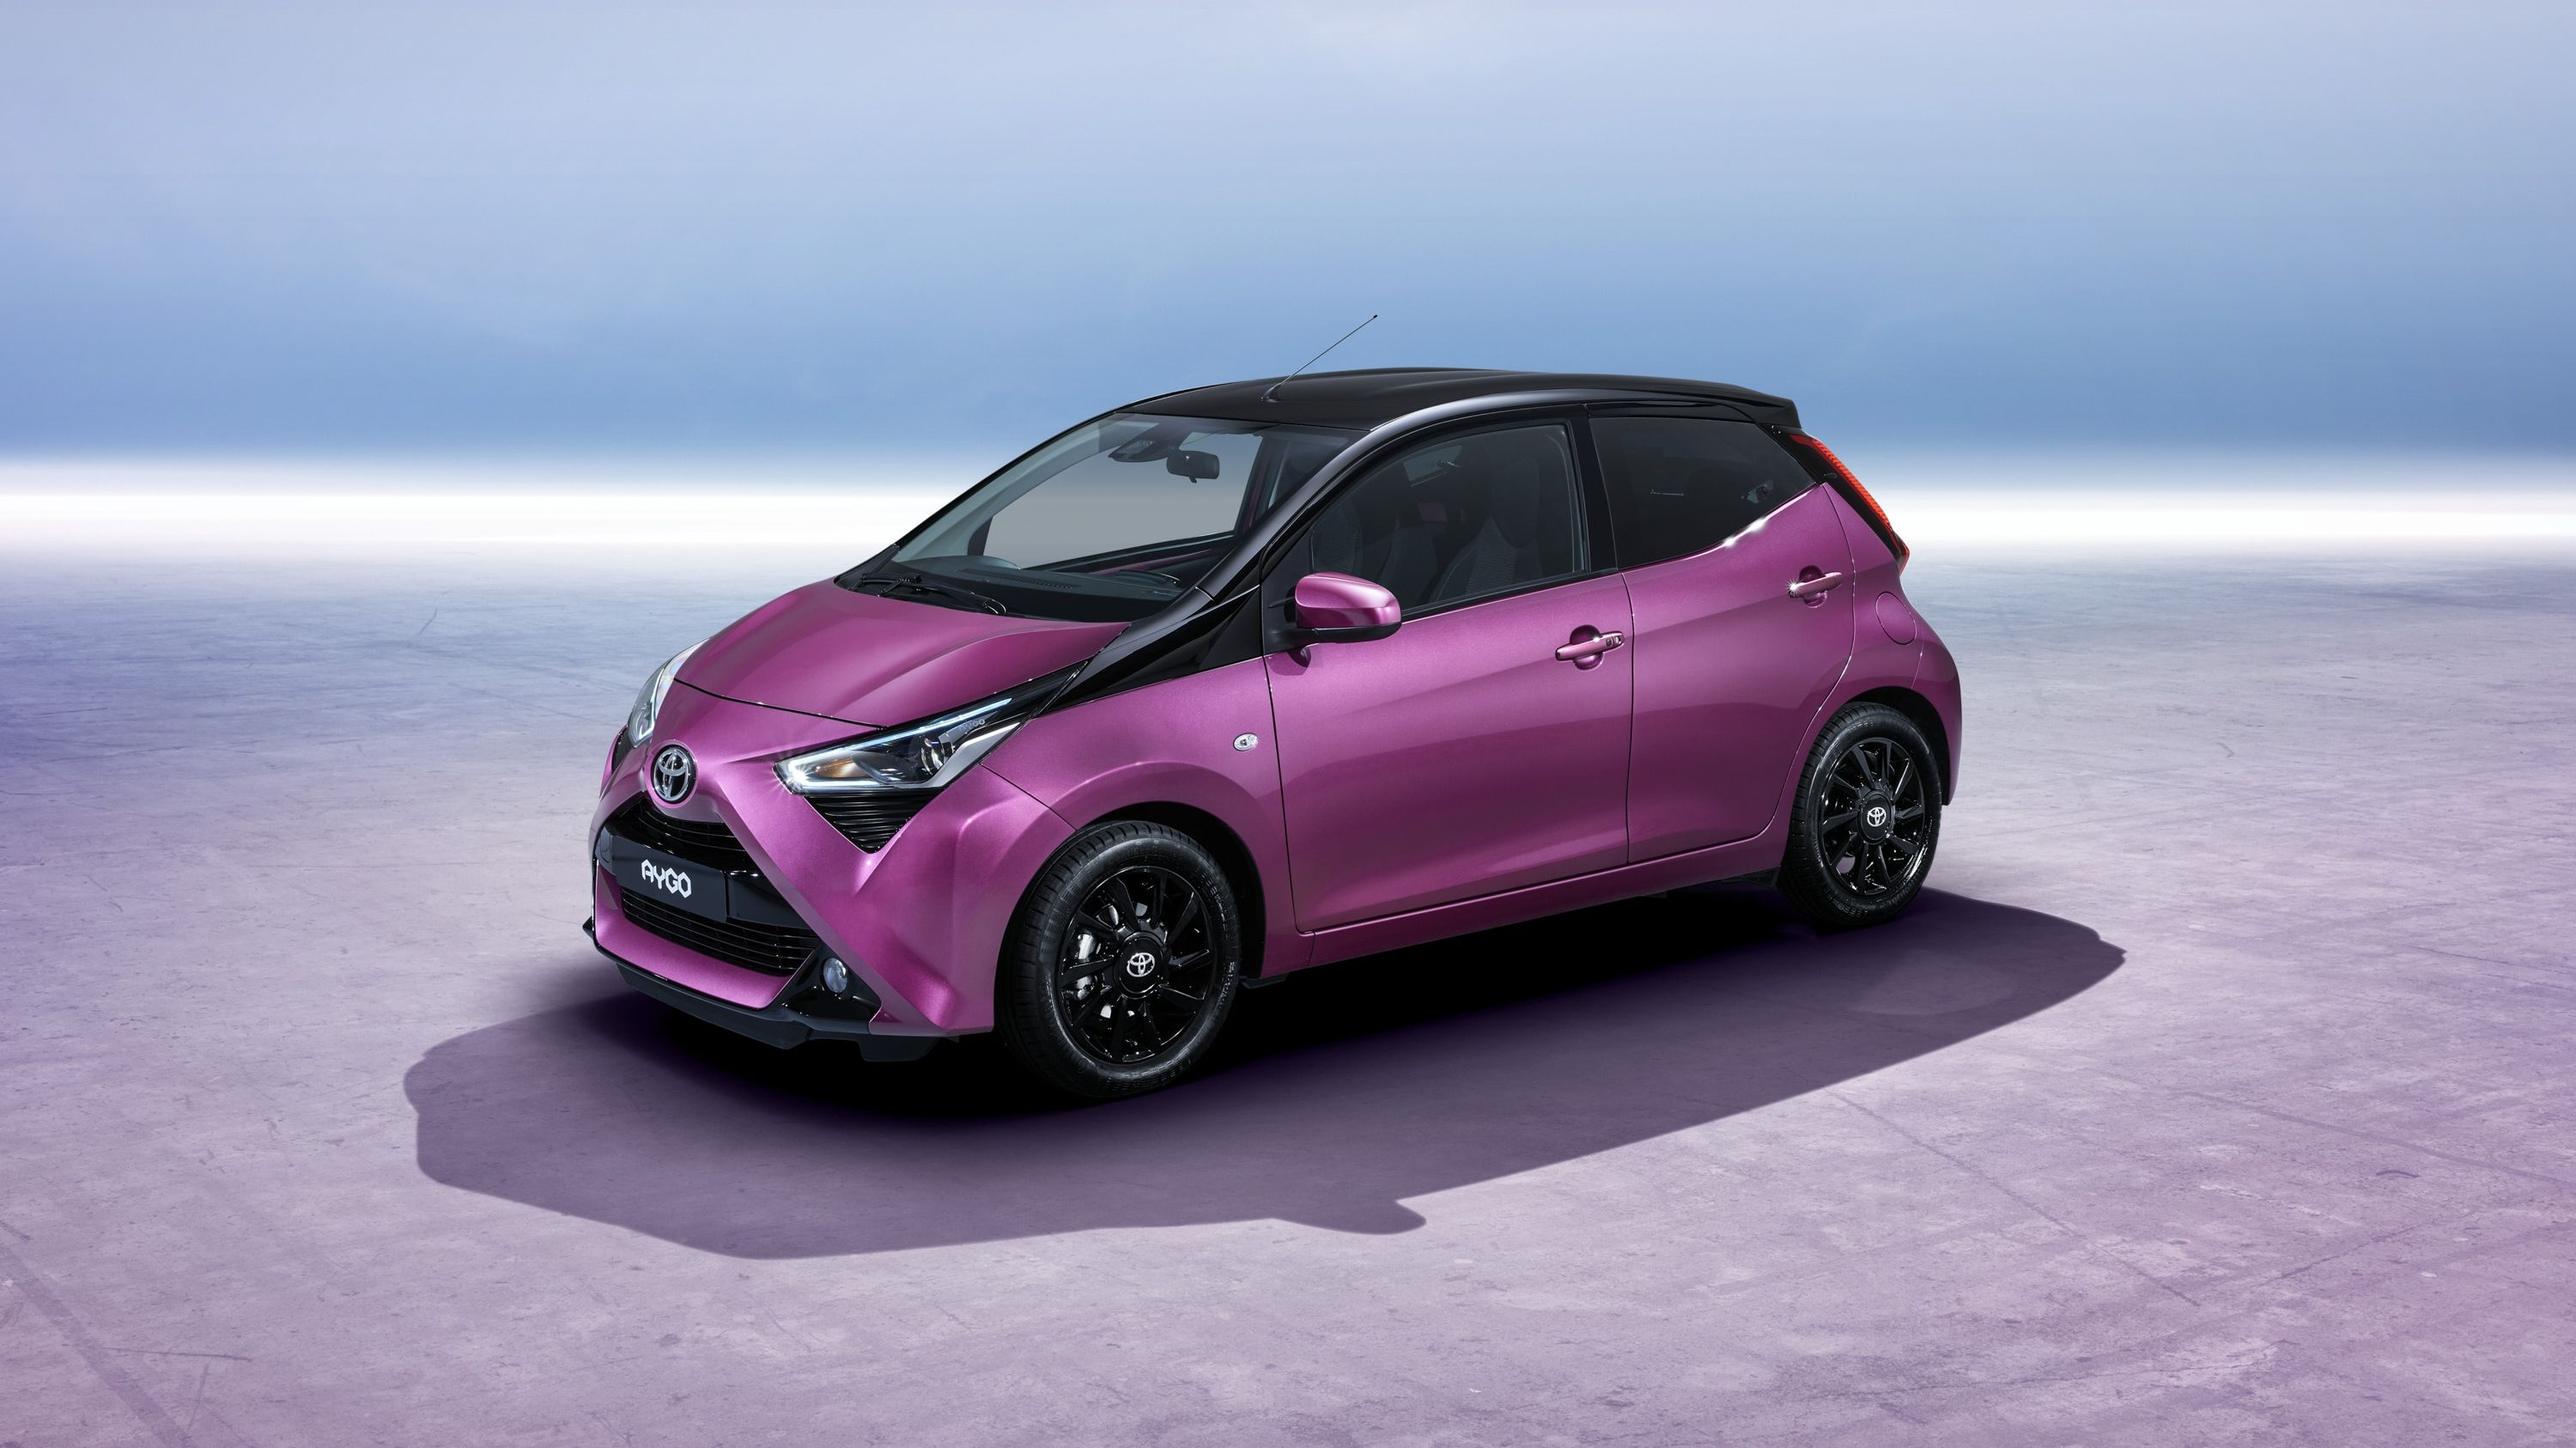 New Toyota Aygo Can Overtake The Vw Up And Hyundai I10 In Europe But Has Little Chance Against Fiat Top Speed Toyota Aygo Toyota Vw Up